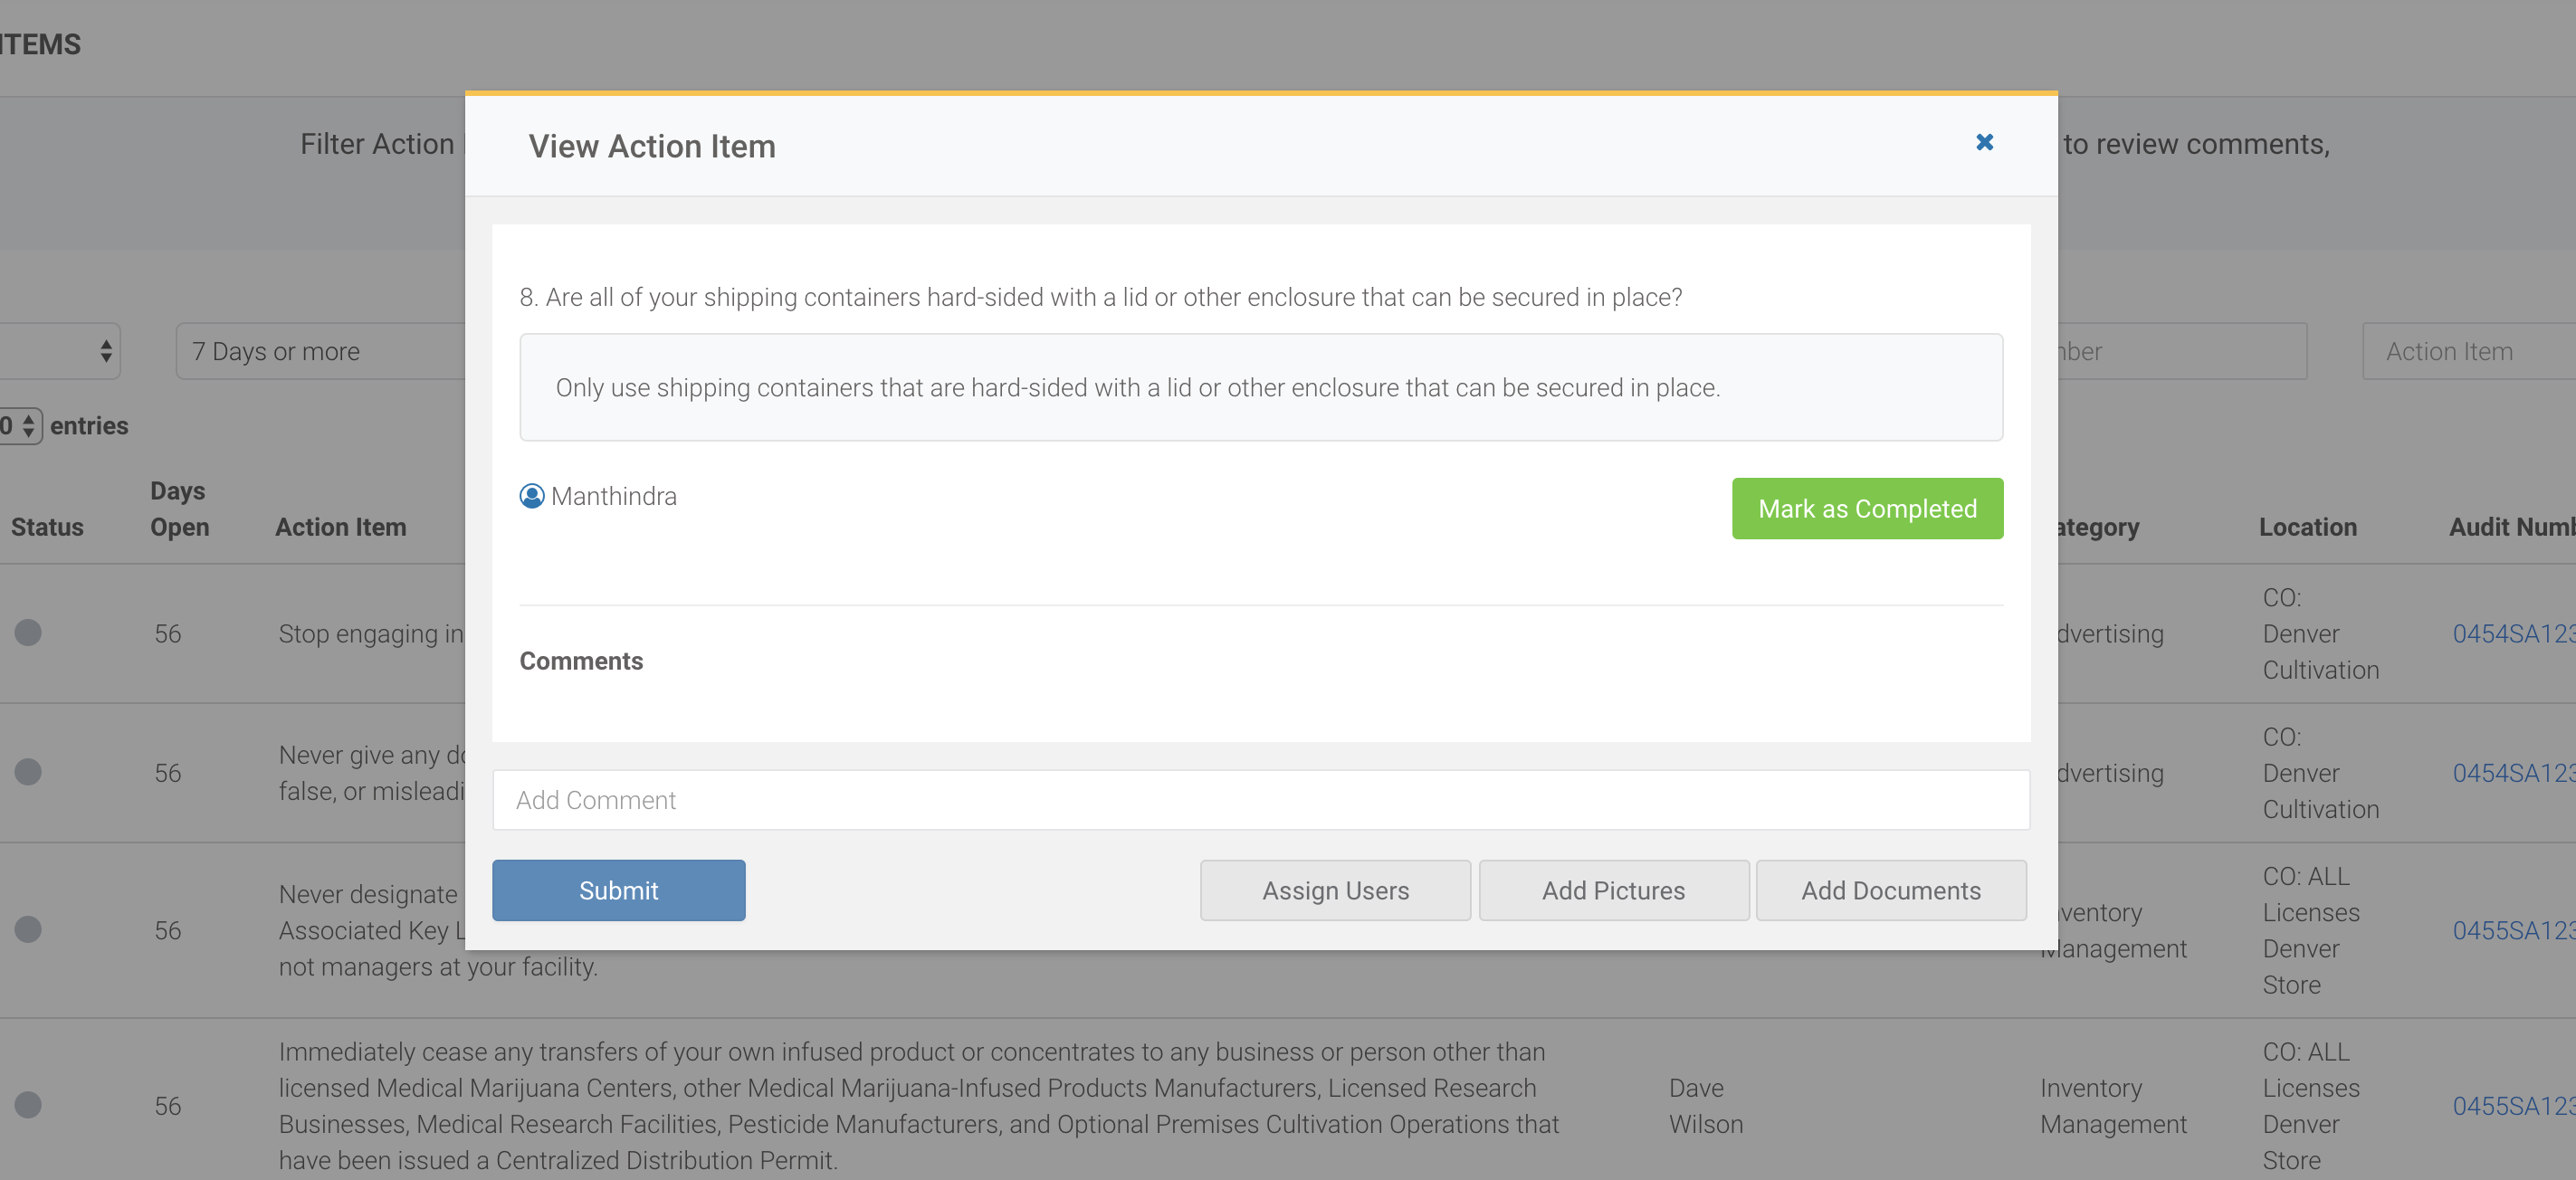 zendesk_action_items_sub-module_view_action_item.png